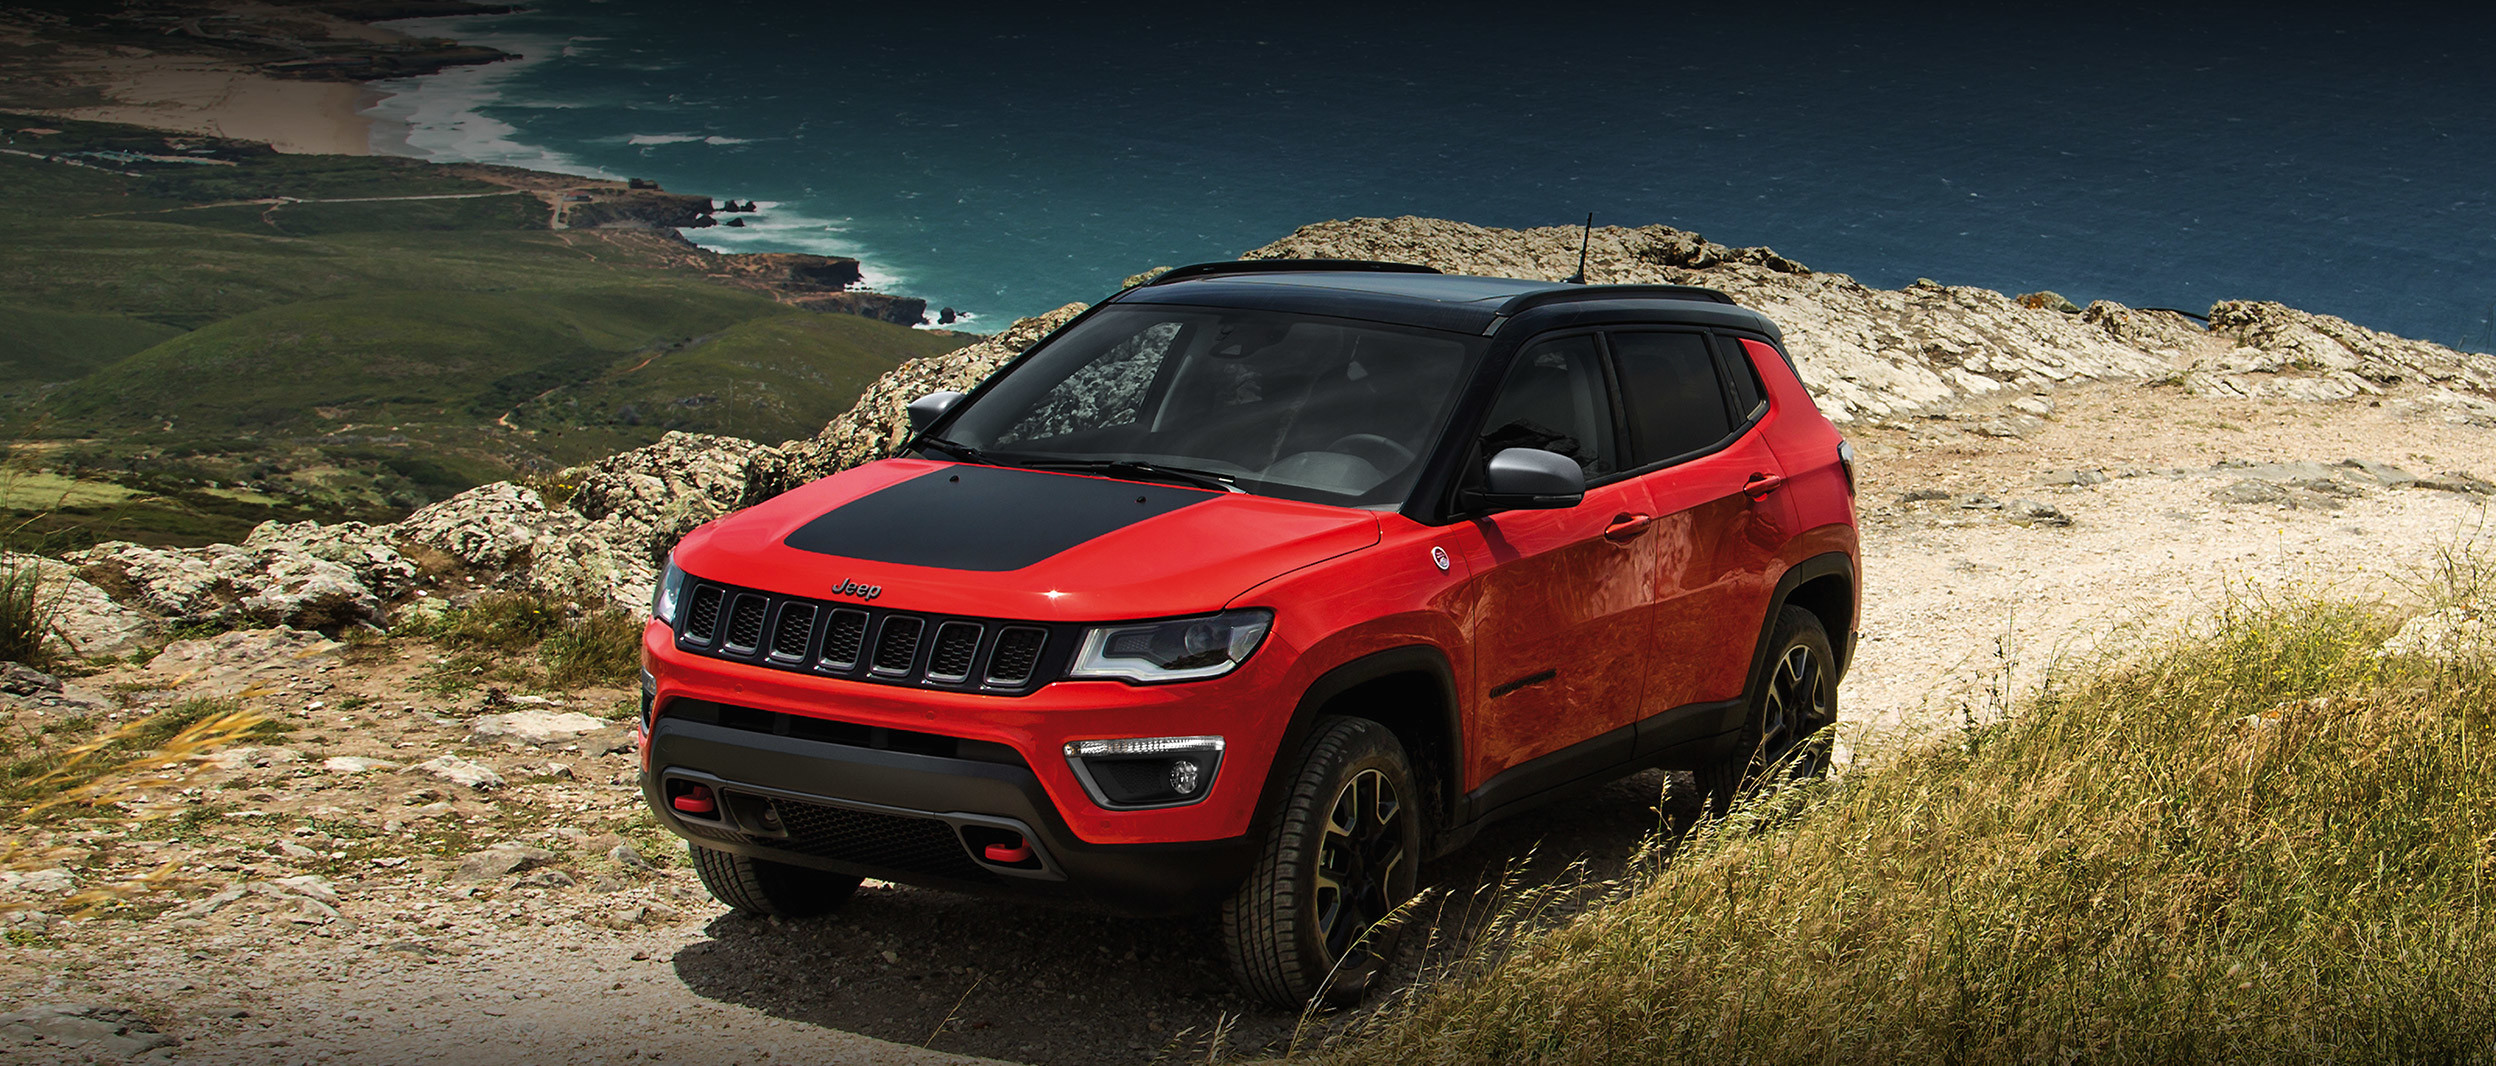 Red 2020 Jeep Compass parked on a sandy road by the beach.